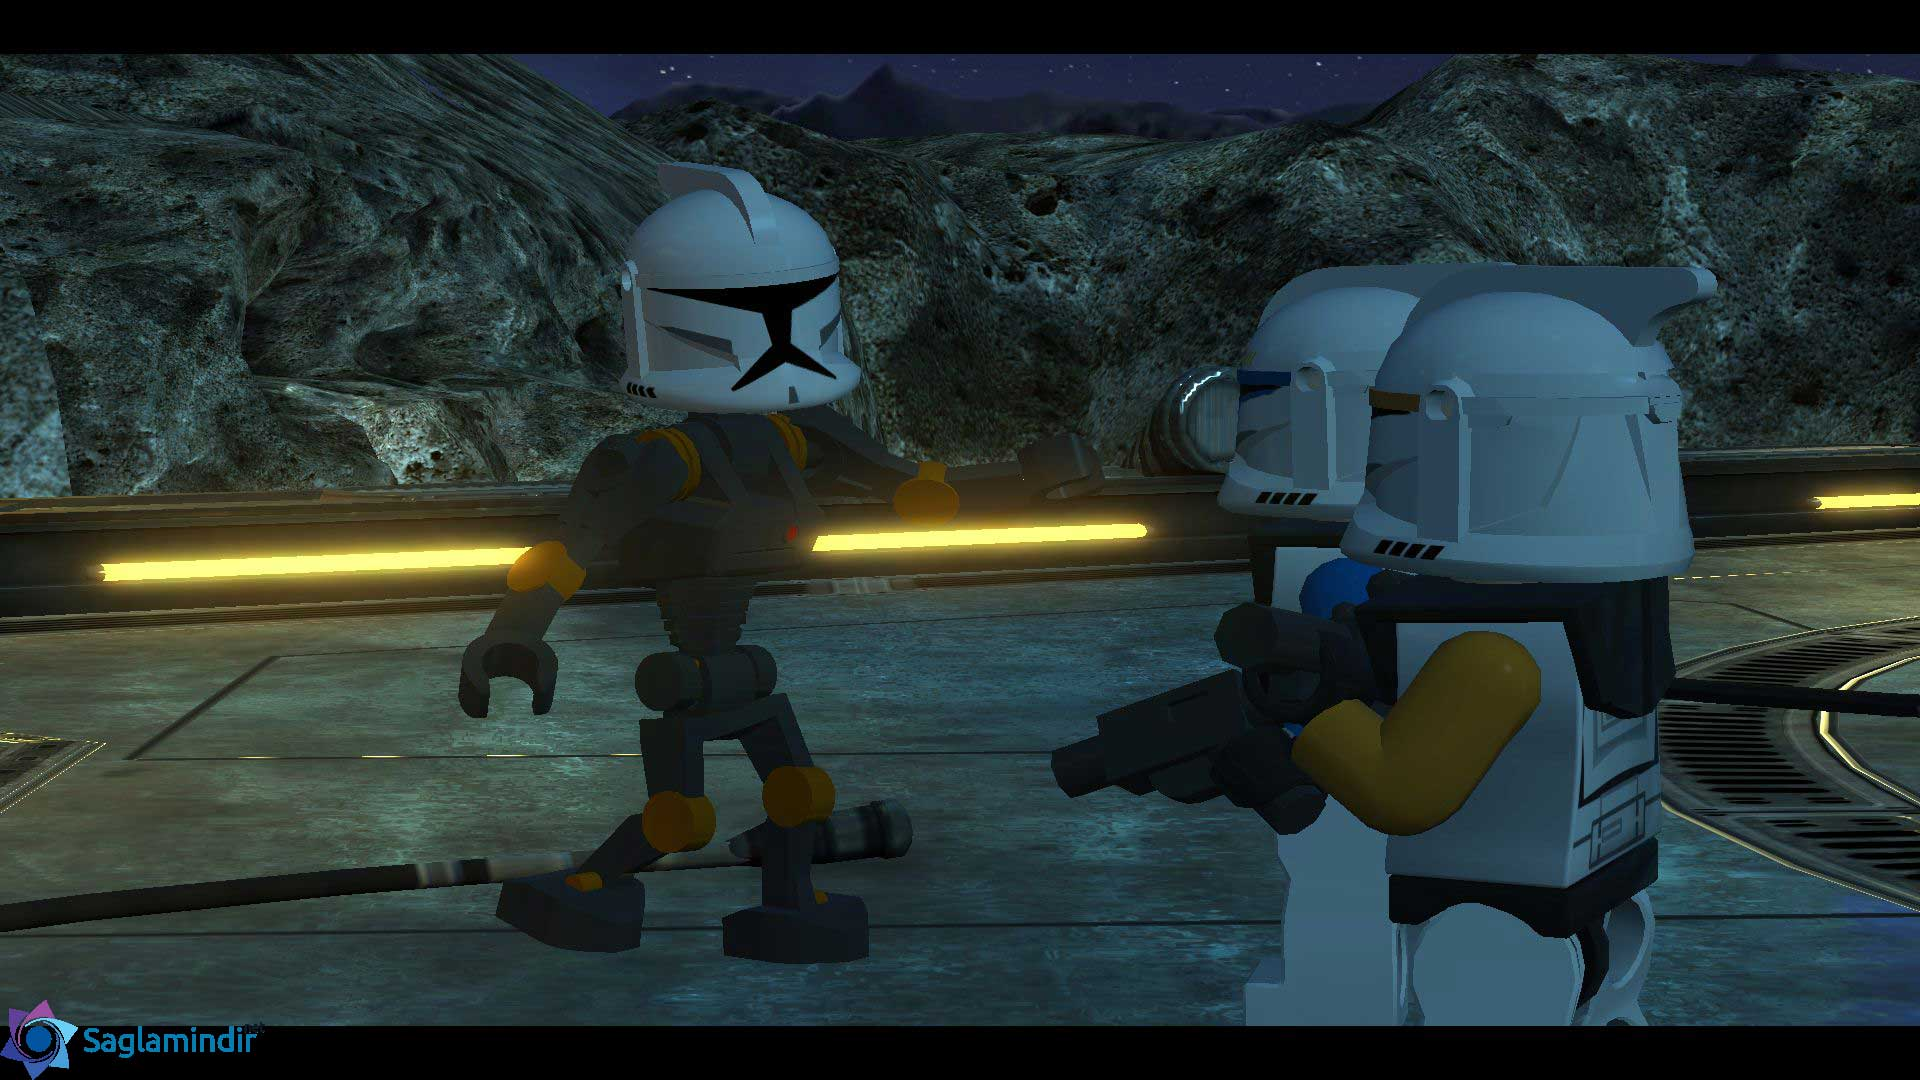 LEGO Star Wars 3 The Clone Wars saglamindir